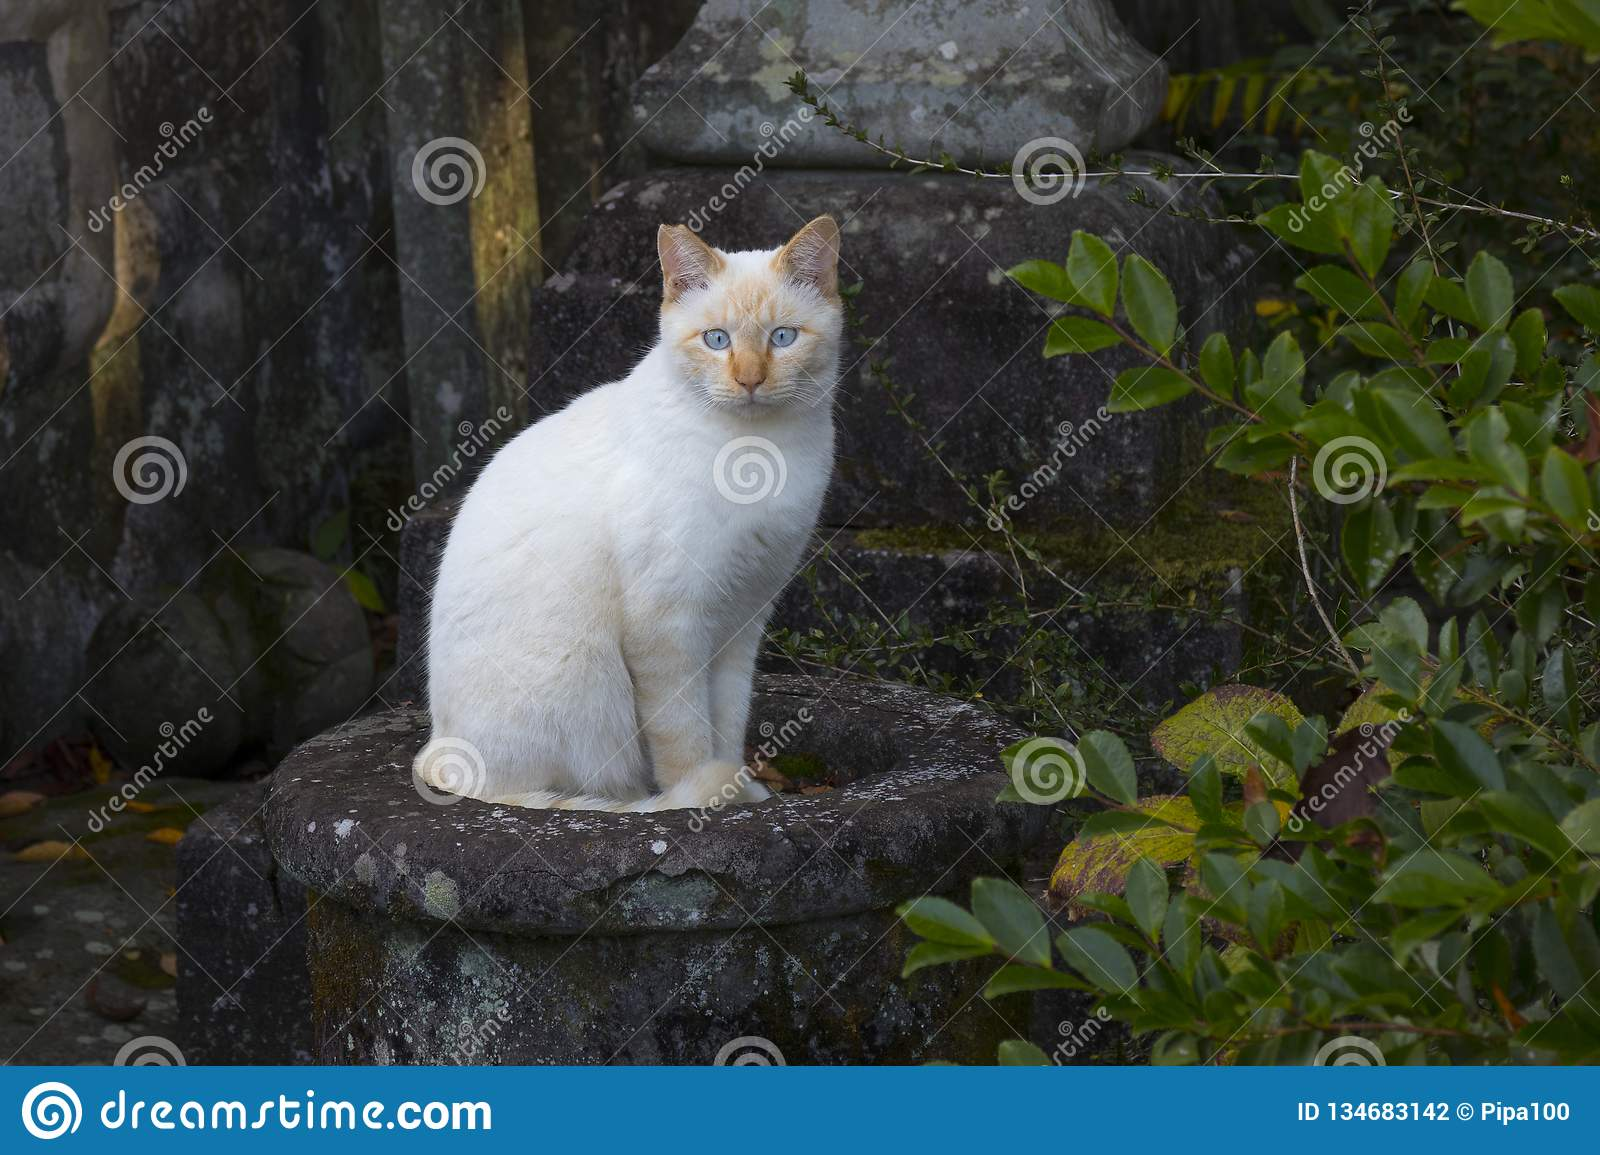 Alley cat sitting near the temple